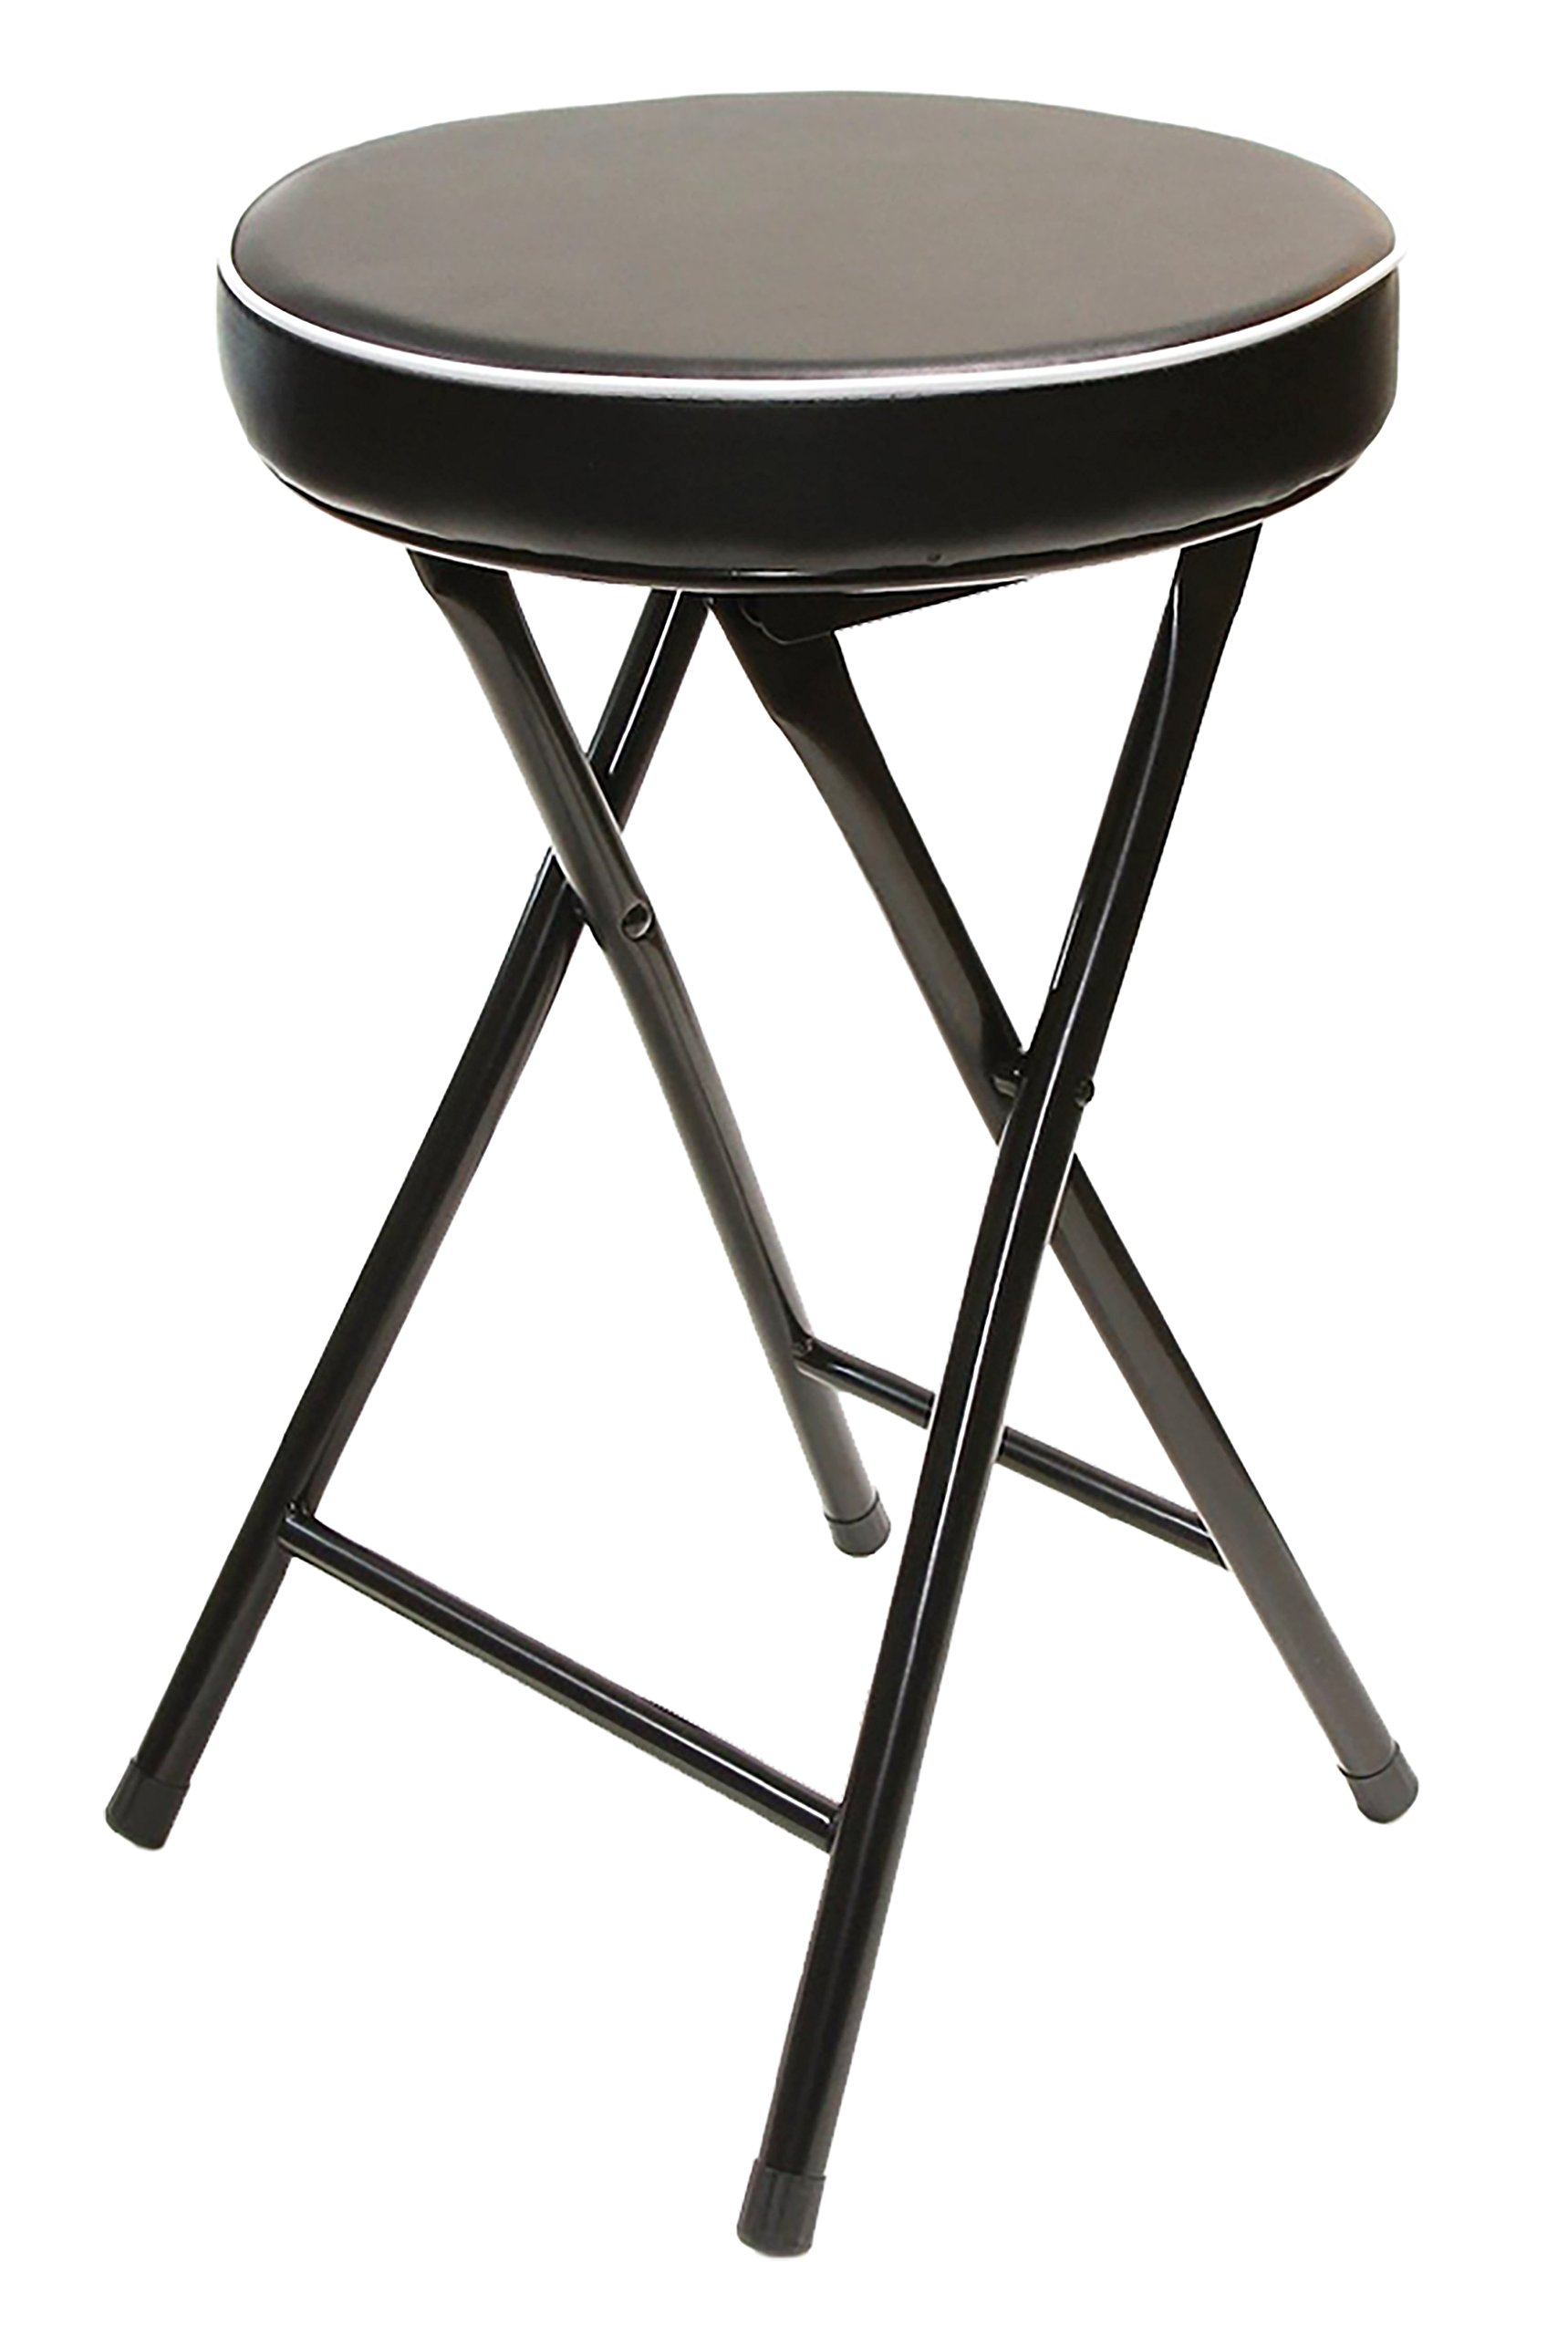 Wee's Beyond 1205 Cushioned Padded Folding Stool